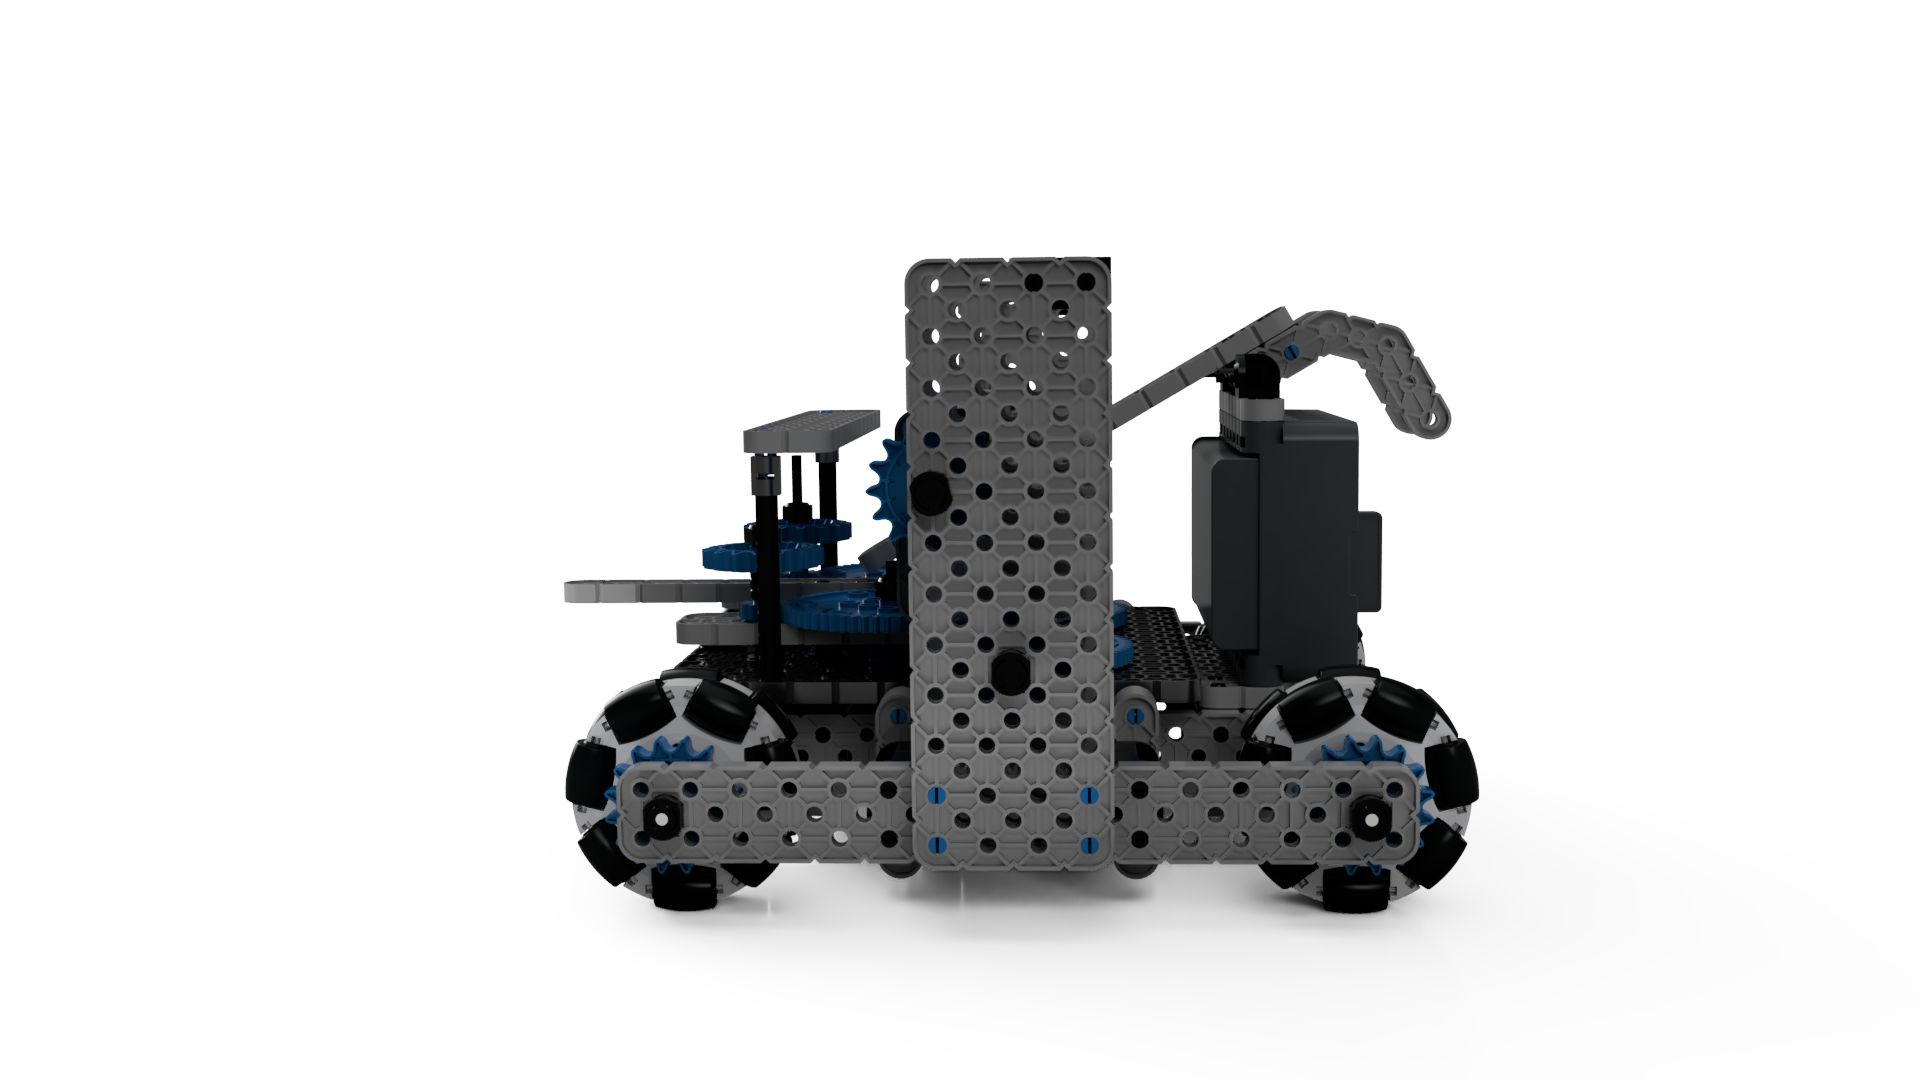 Vex-iq---ball-trigger-robot-2019-jun-05-08-32-11pm-000-customizedview12725364496-png-3500-3500